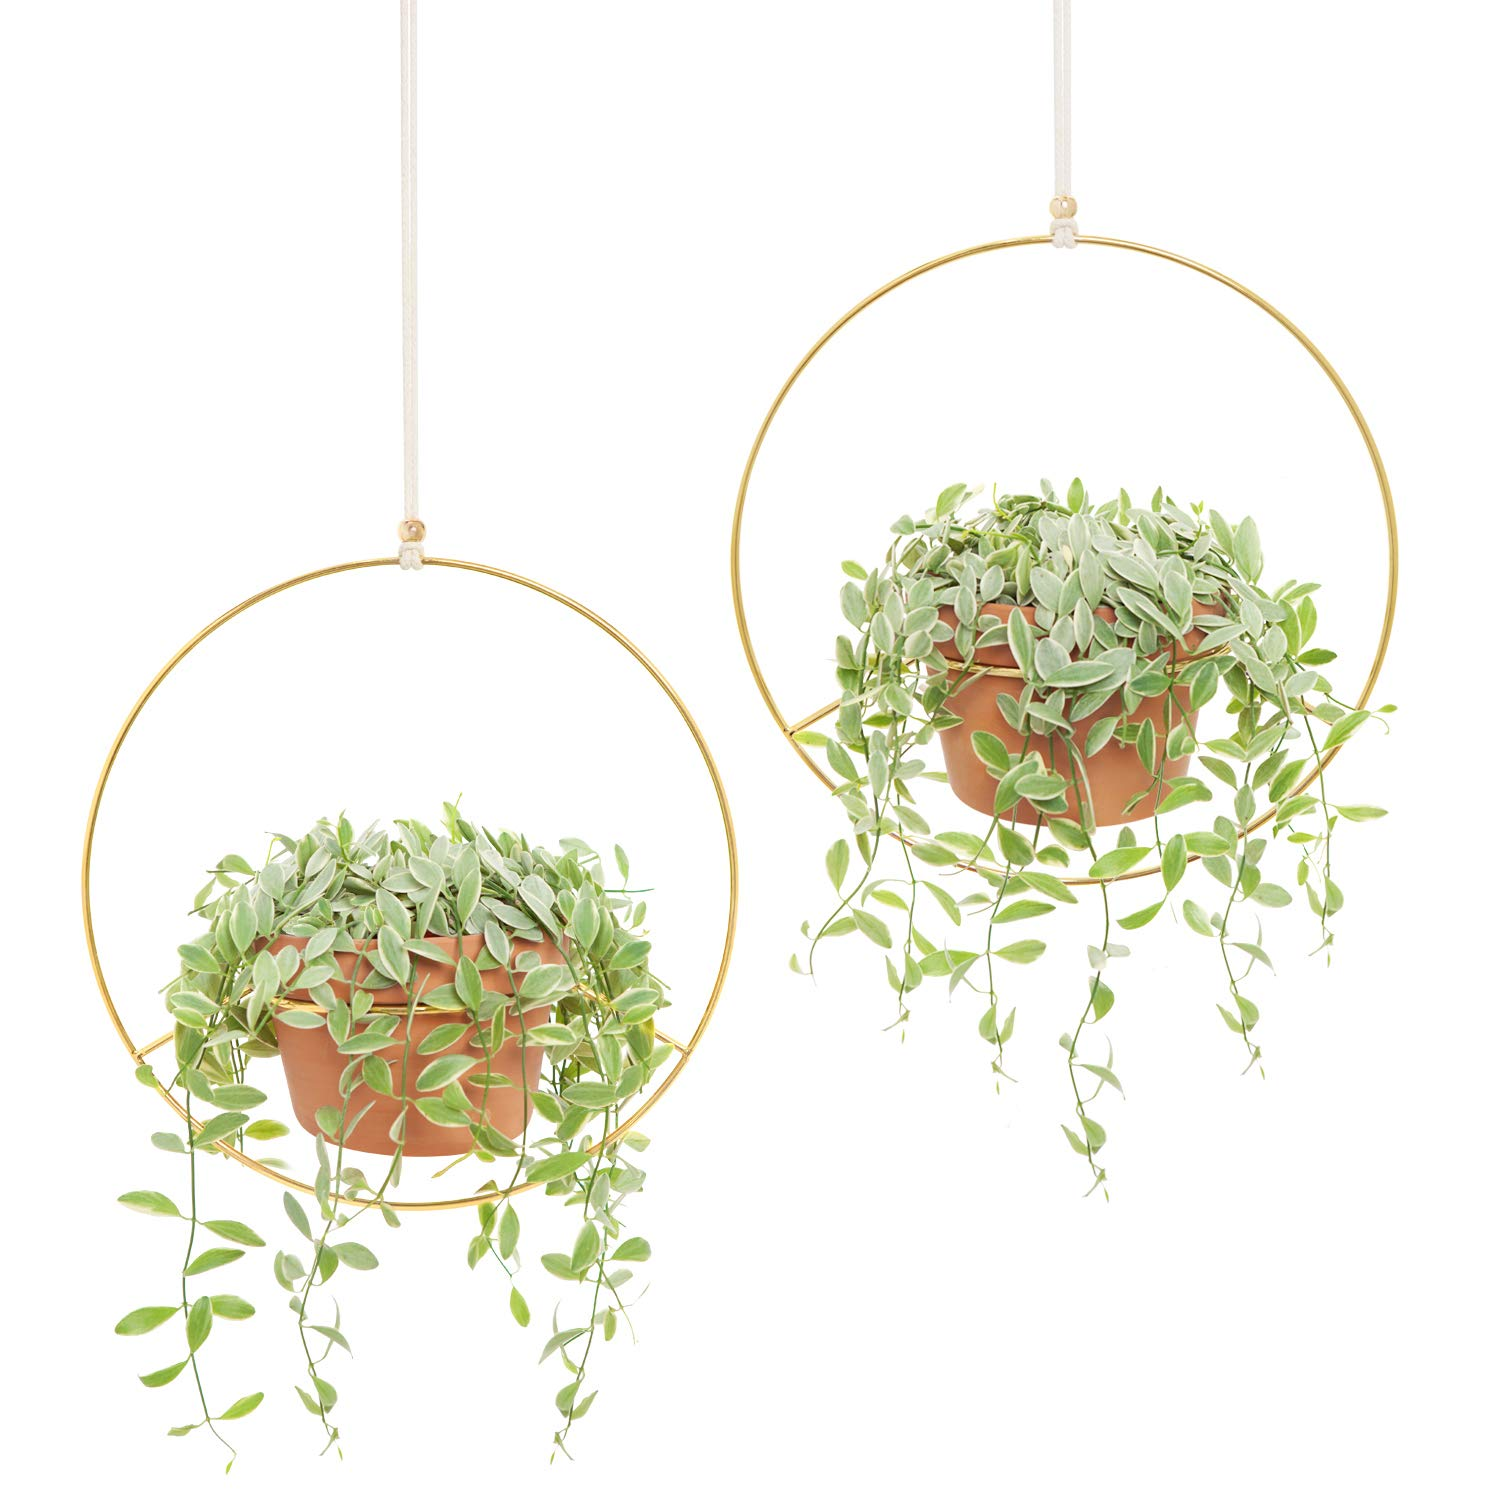 Mkono 2 Pcs Metal Round Hanging Planter Modern Plant Hangers Mid Century Flower Pot Holder Home Decor, Fits 6 Inch Pot, Gold Pot NOT Included